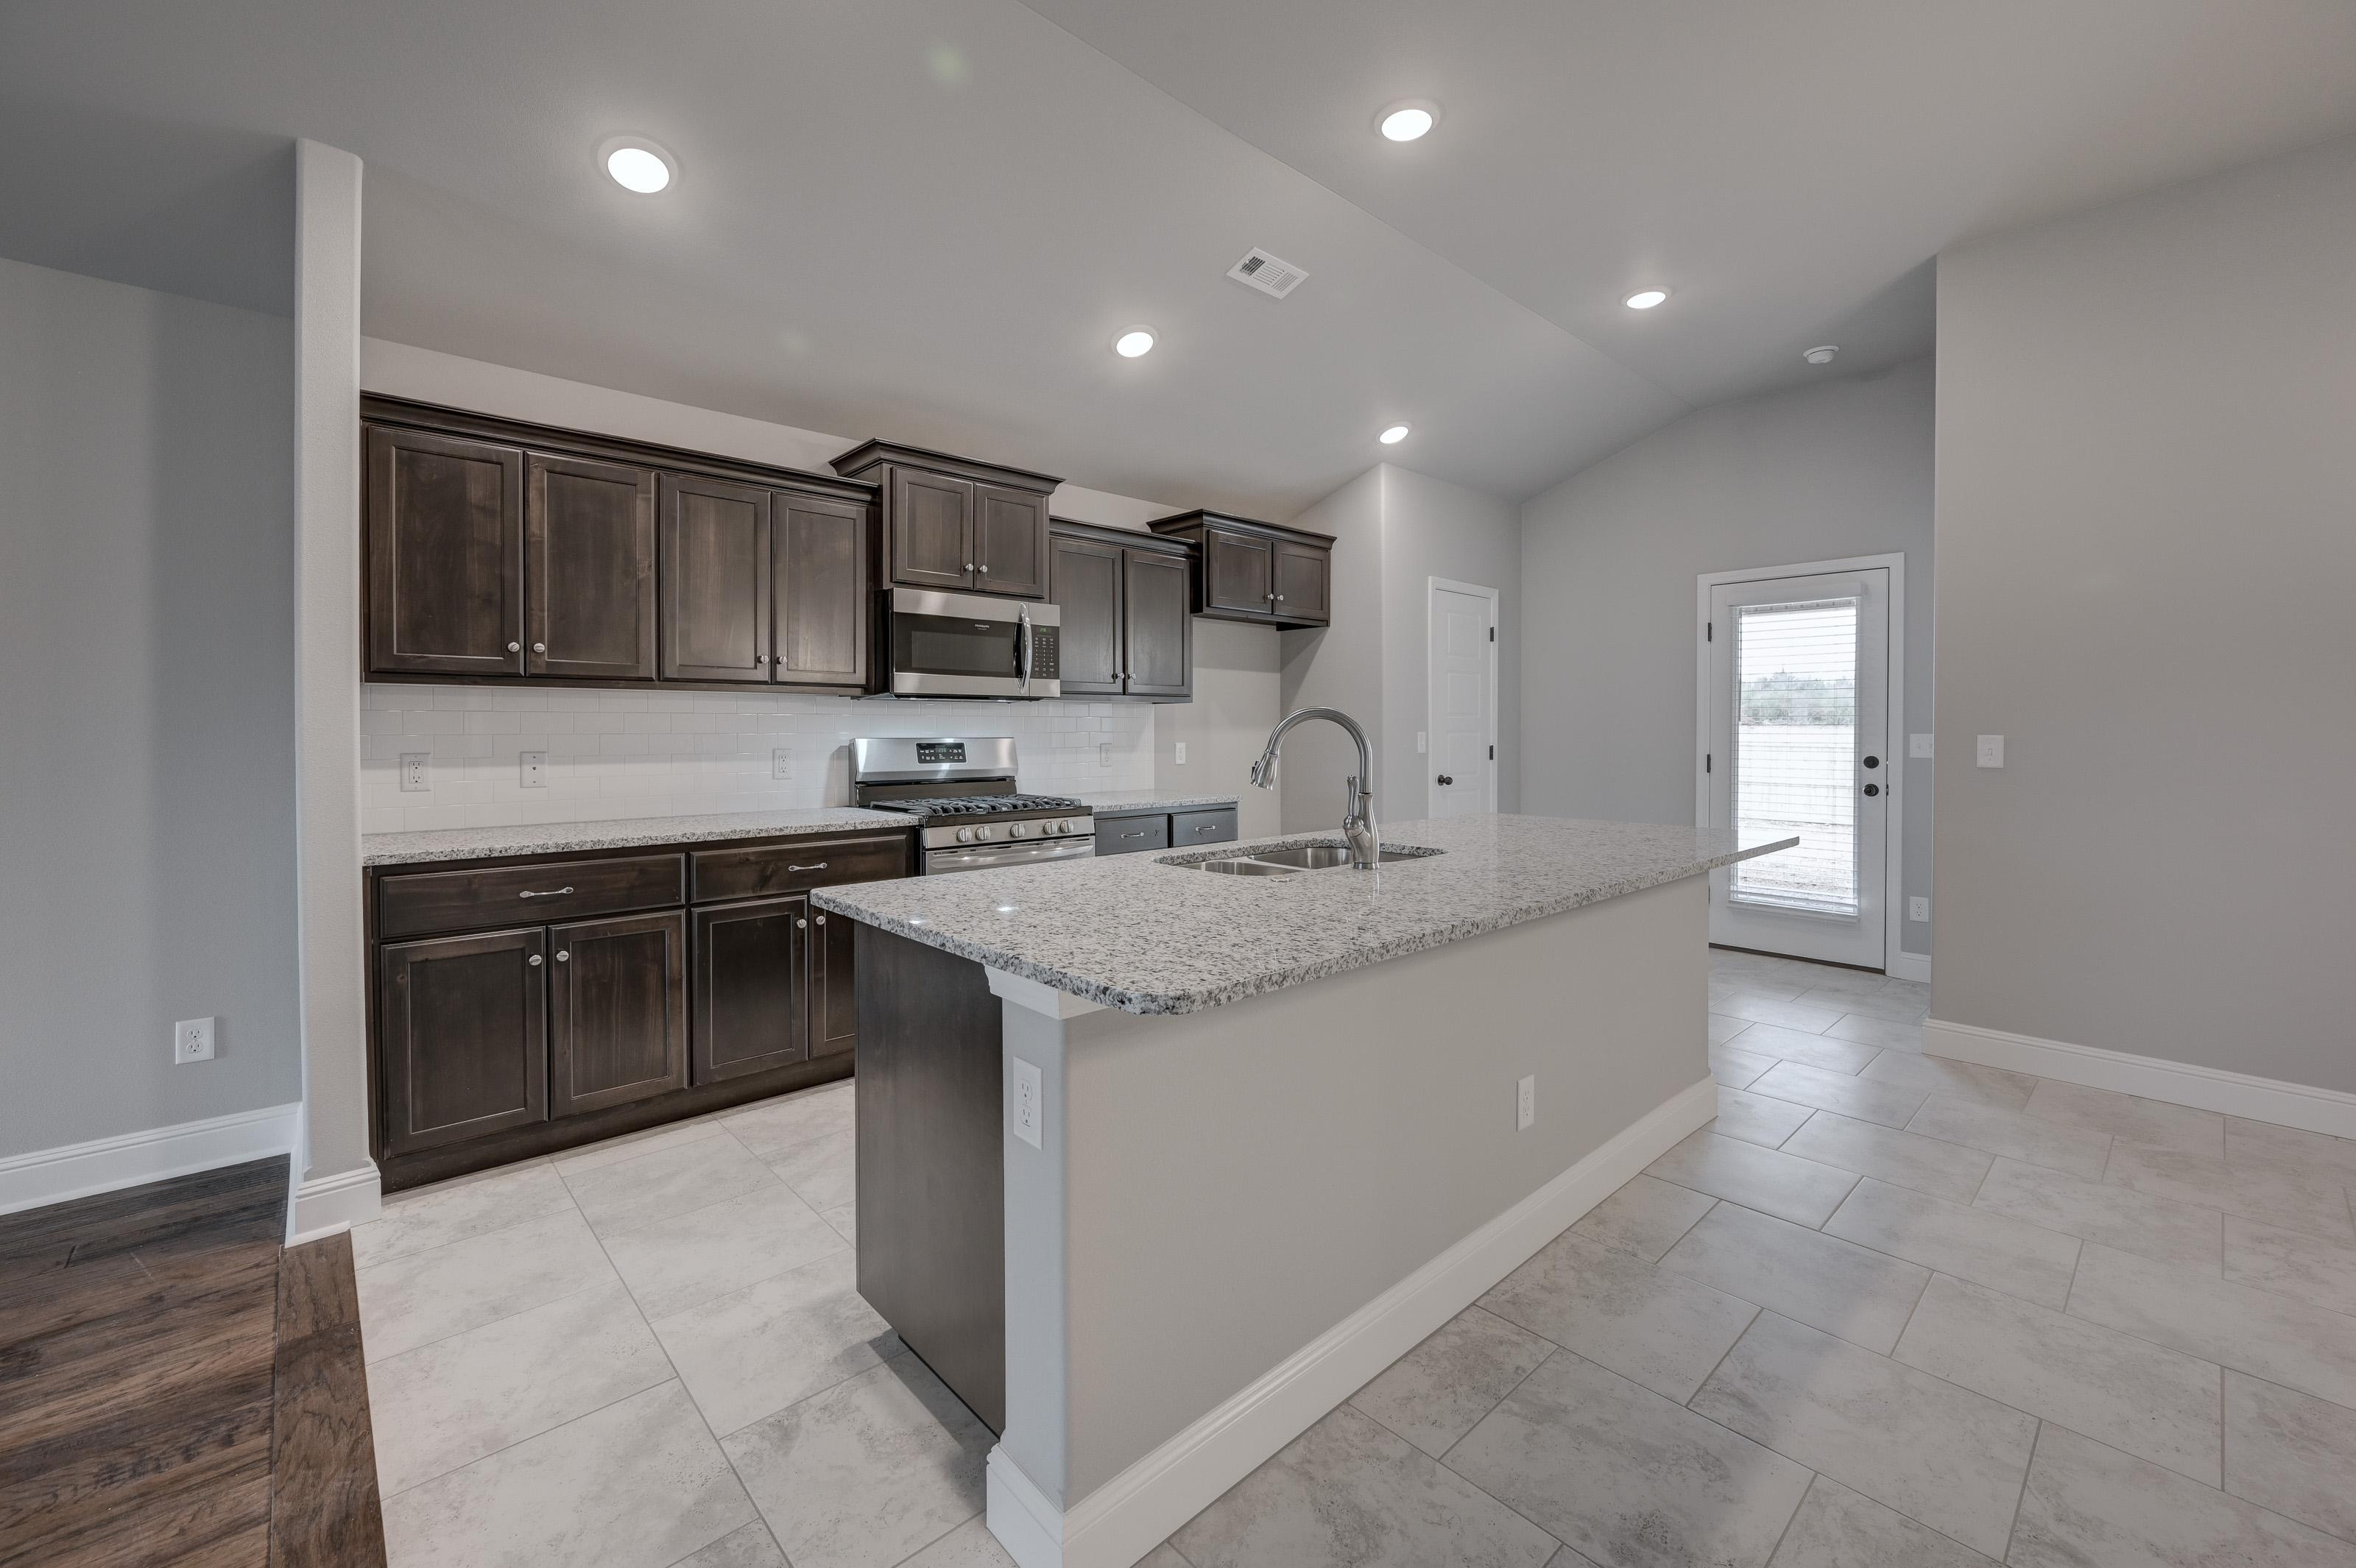 Kitchen featured in the 1550KB Series By Schuber Mitchell Homes in Fayetteville, AR